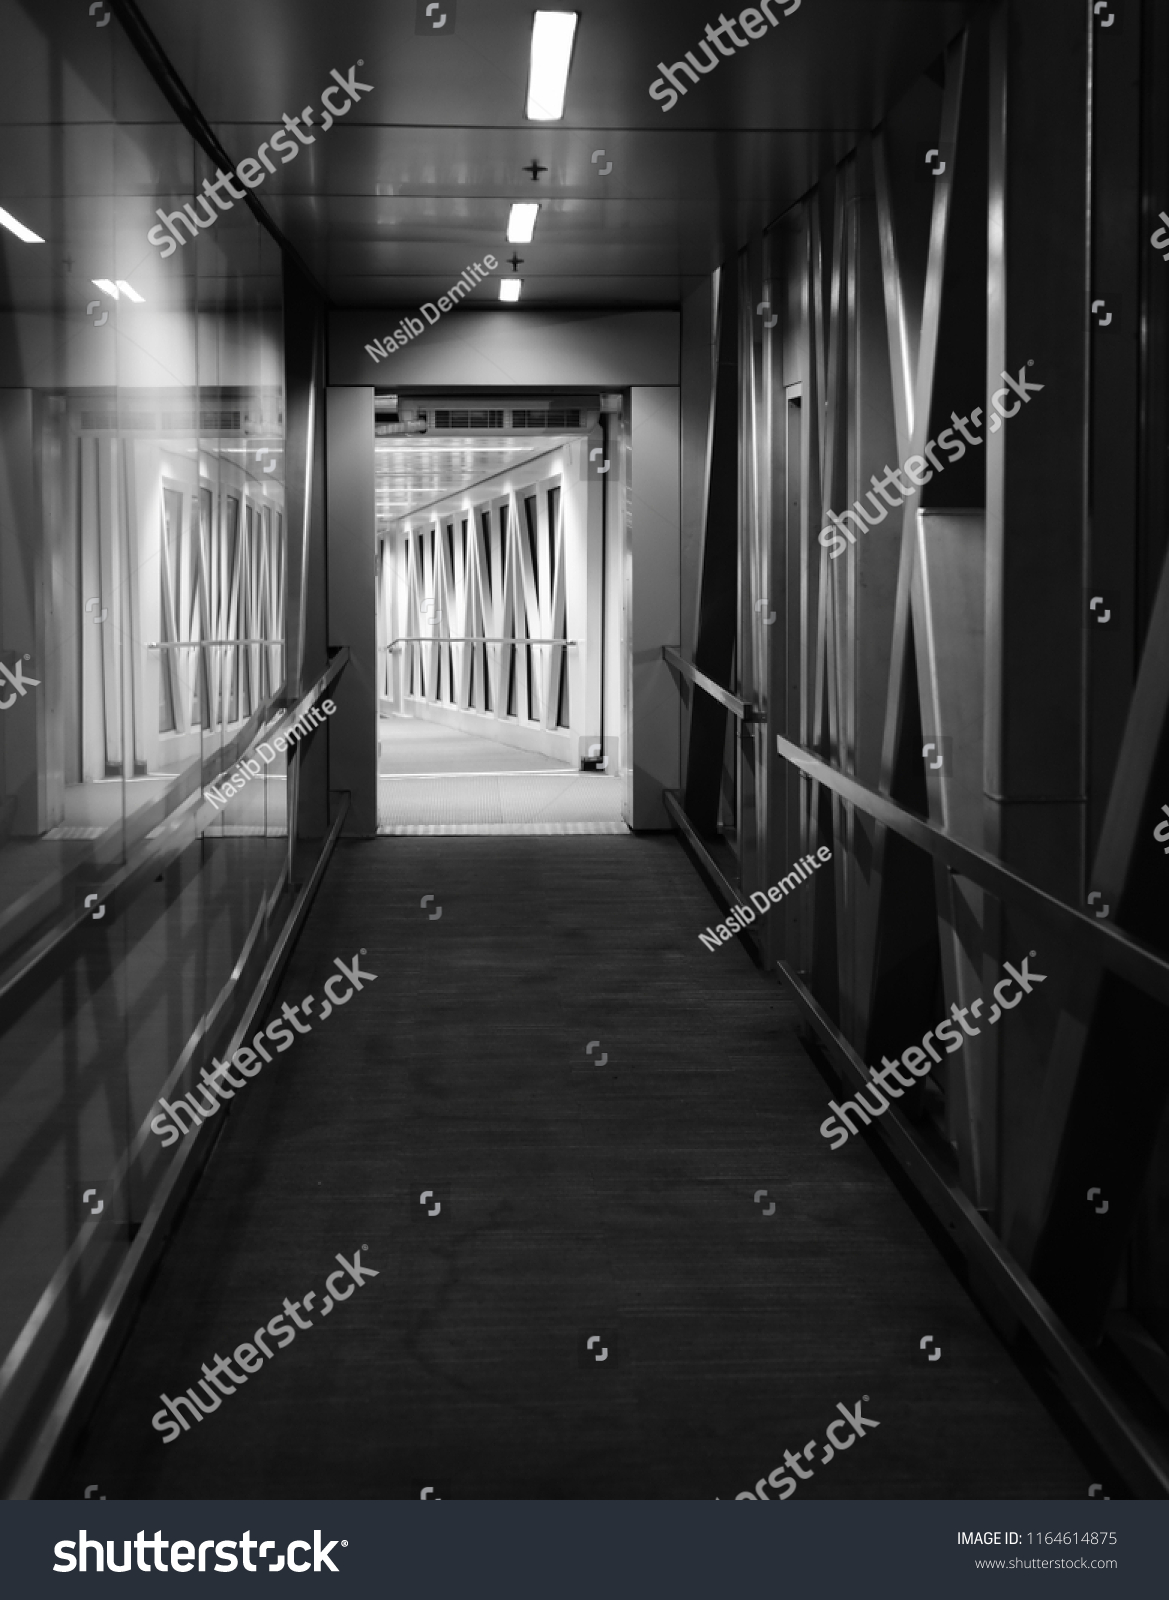 Black and white interior design of a jet bridge isolated unique photo